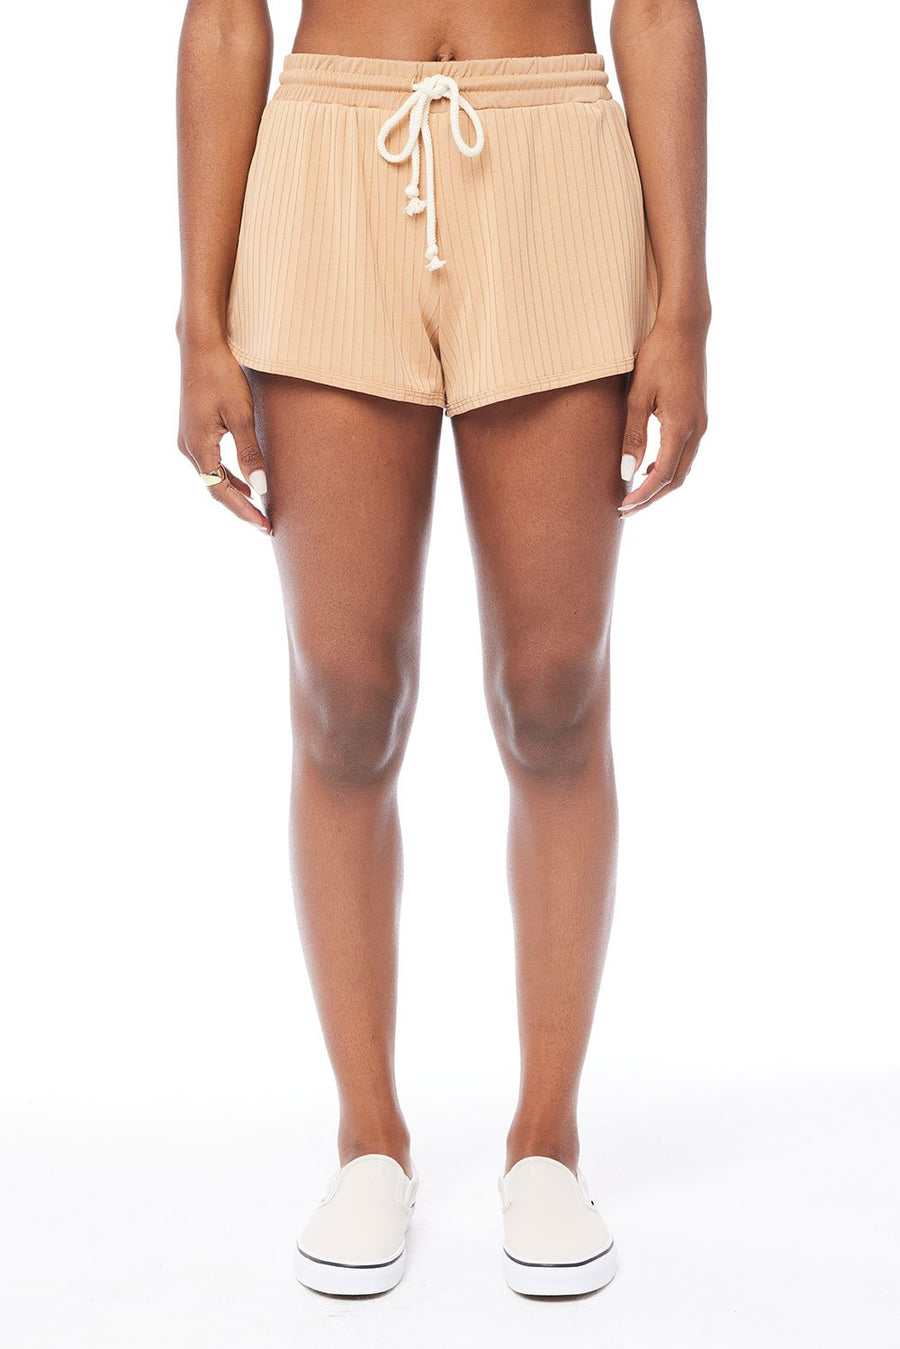 Saltwater Luxe Lounge Shorts in Pebble